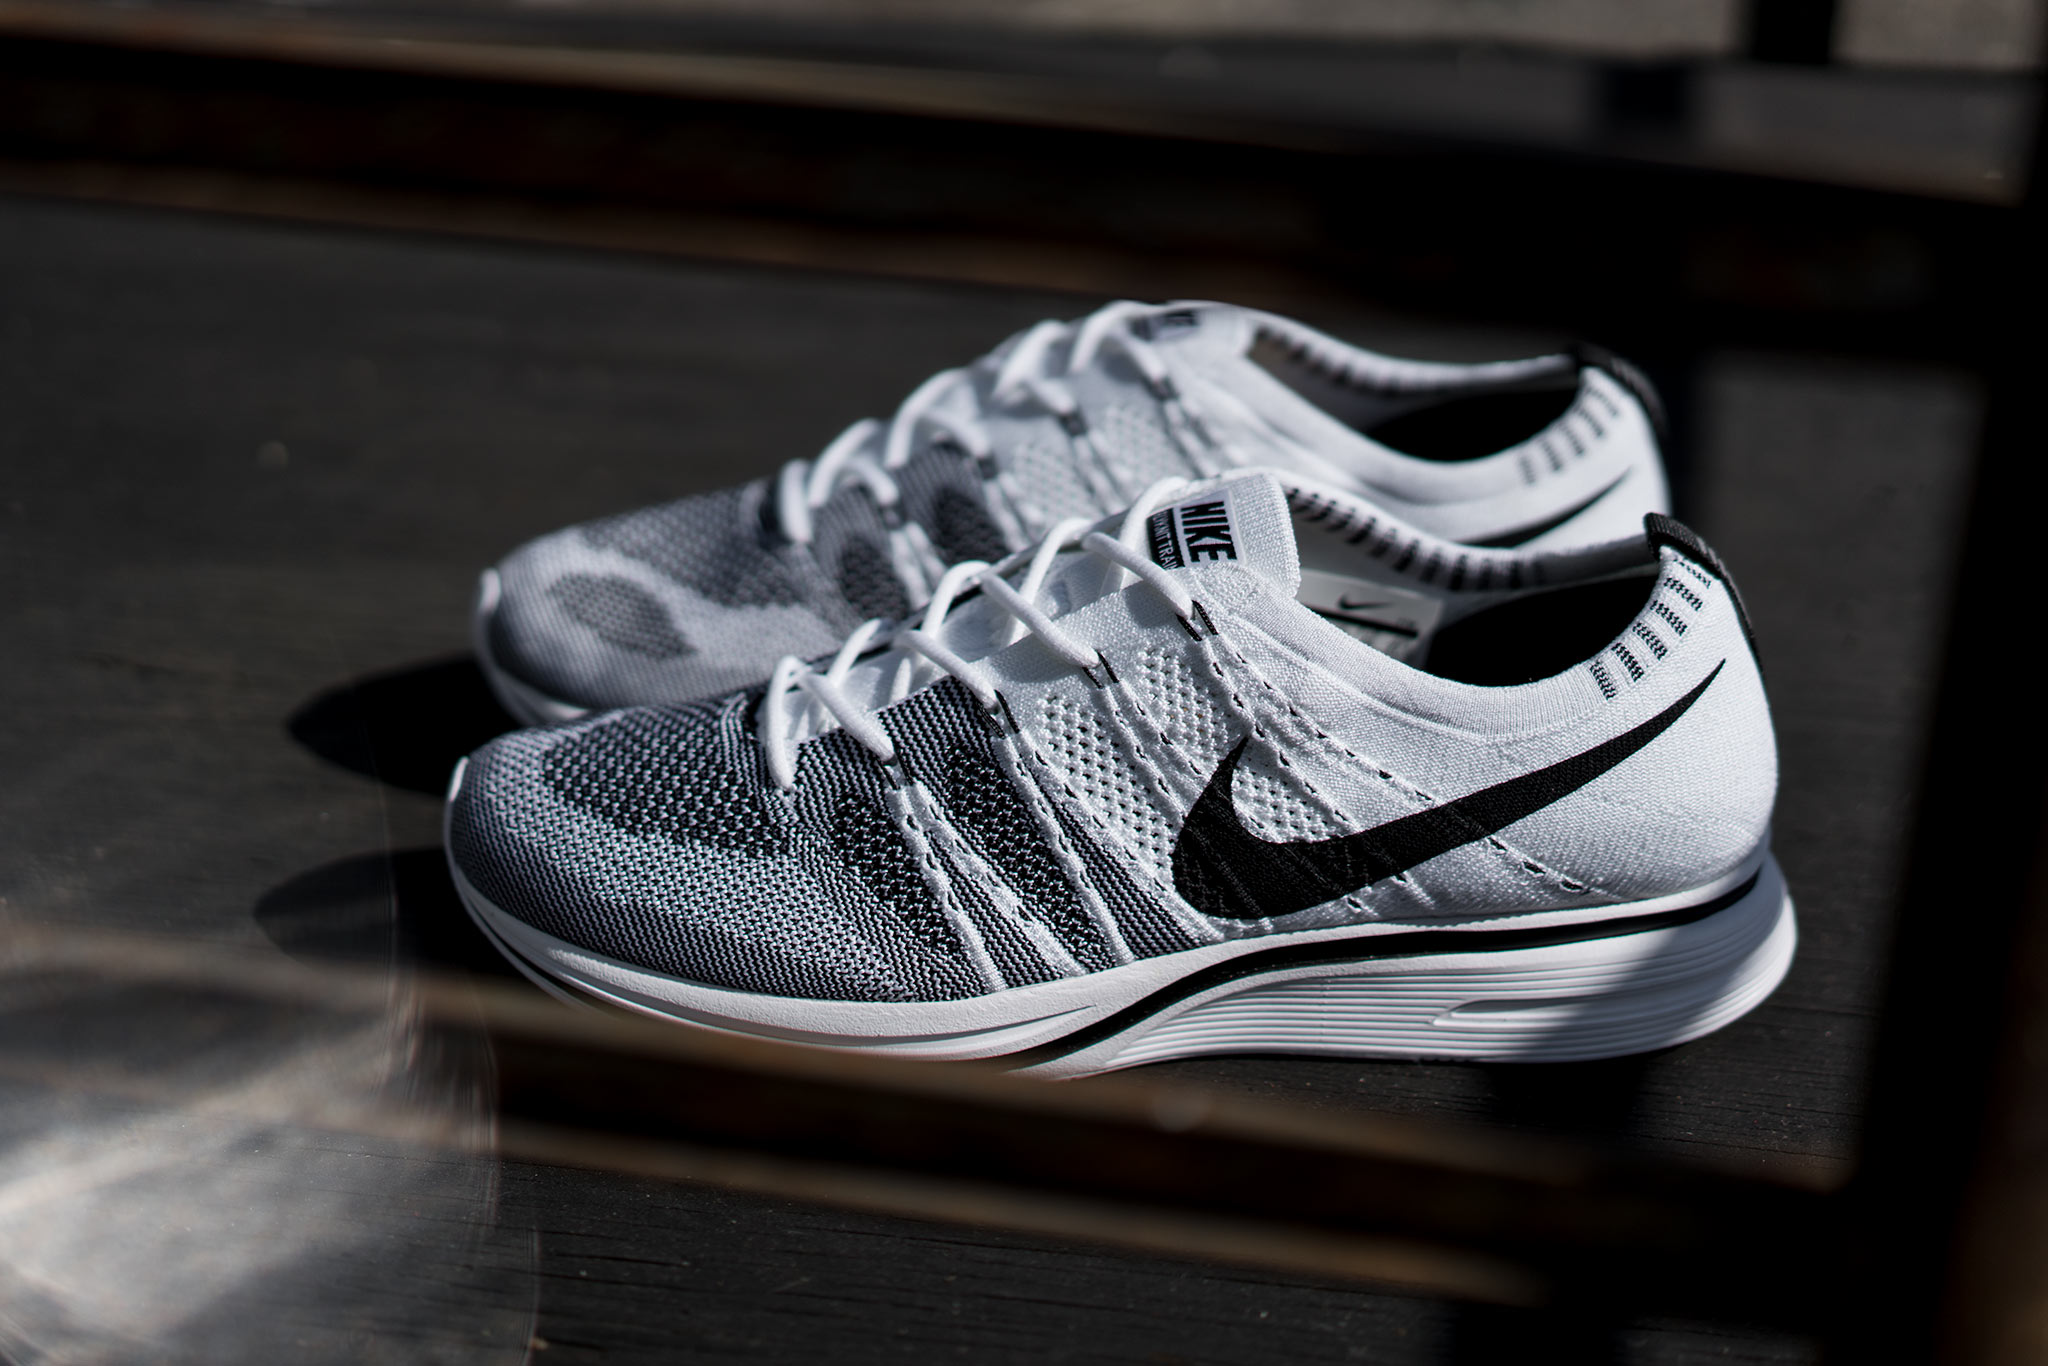 c1687e0c6a ... purchase release information the nike flyknit trainer will release in  stores at haven vancouver toronto on